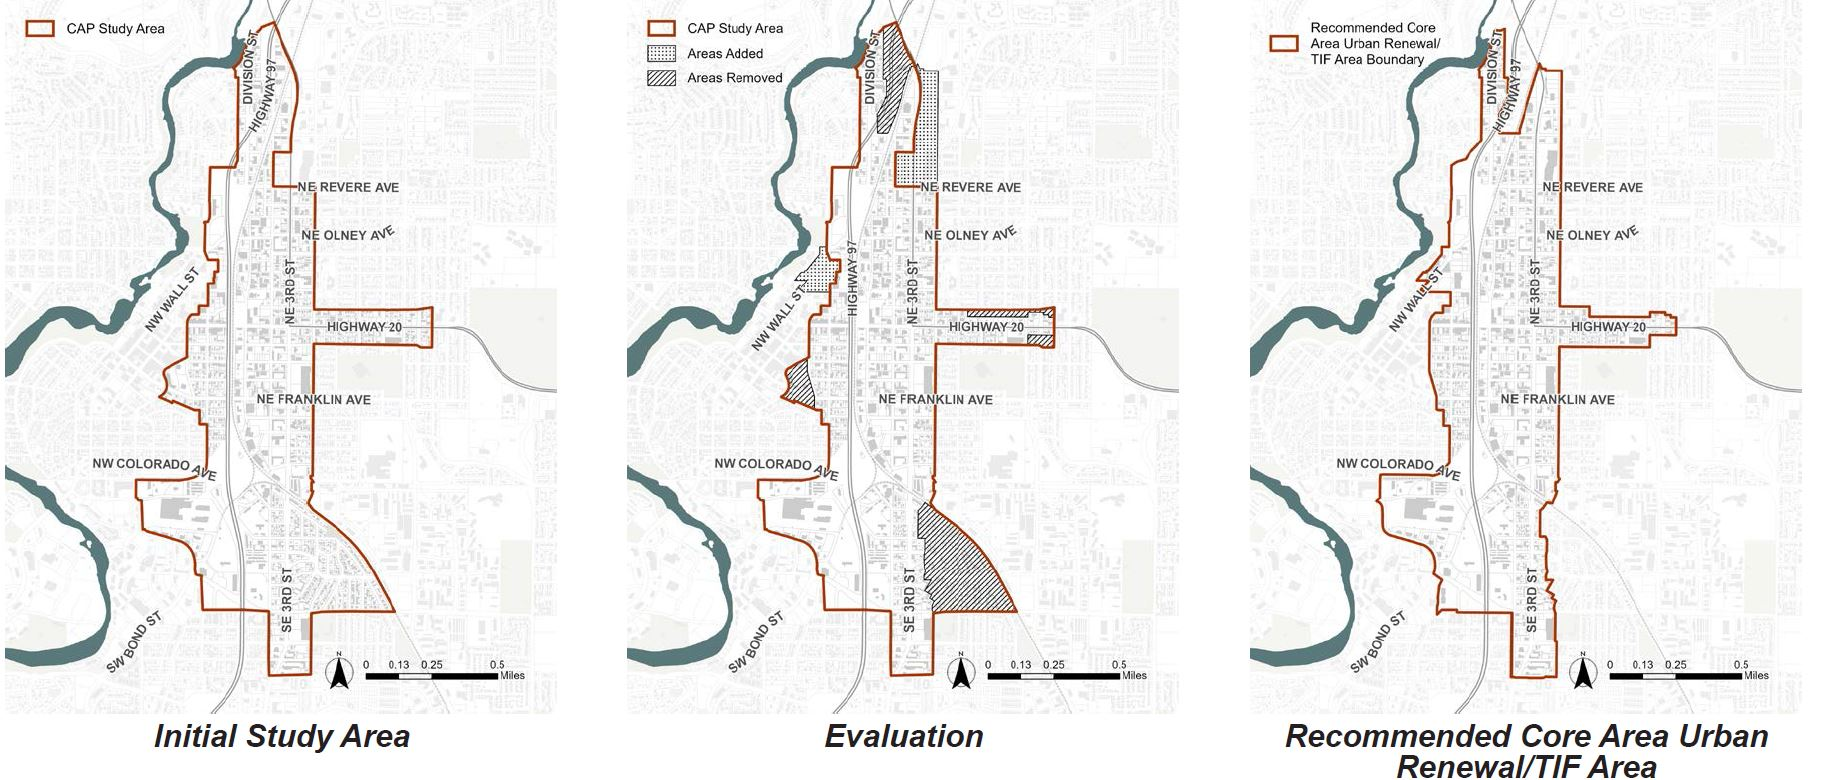 Three maps that show progression of Core Area planning process from an initial study area to an evaluation to add or remove areas and a final recommended boundary that is 30 acres smaller than the original study area.